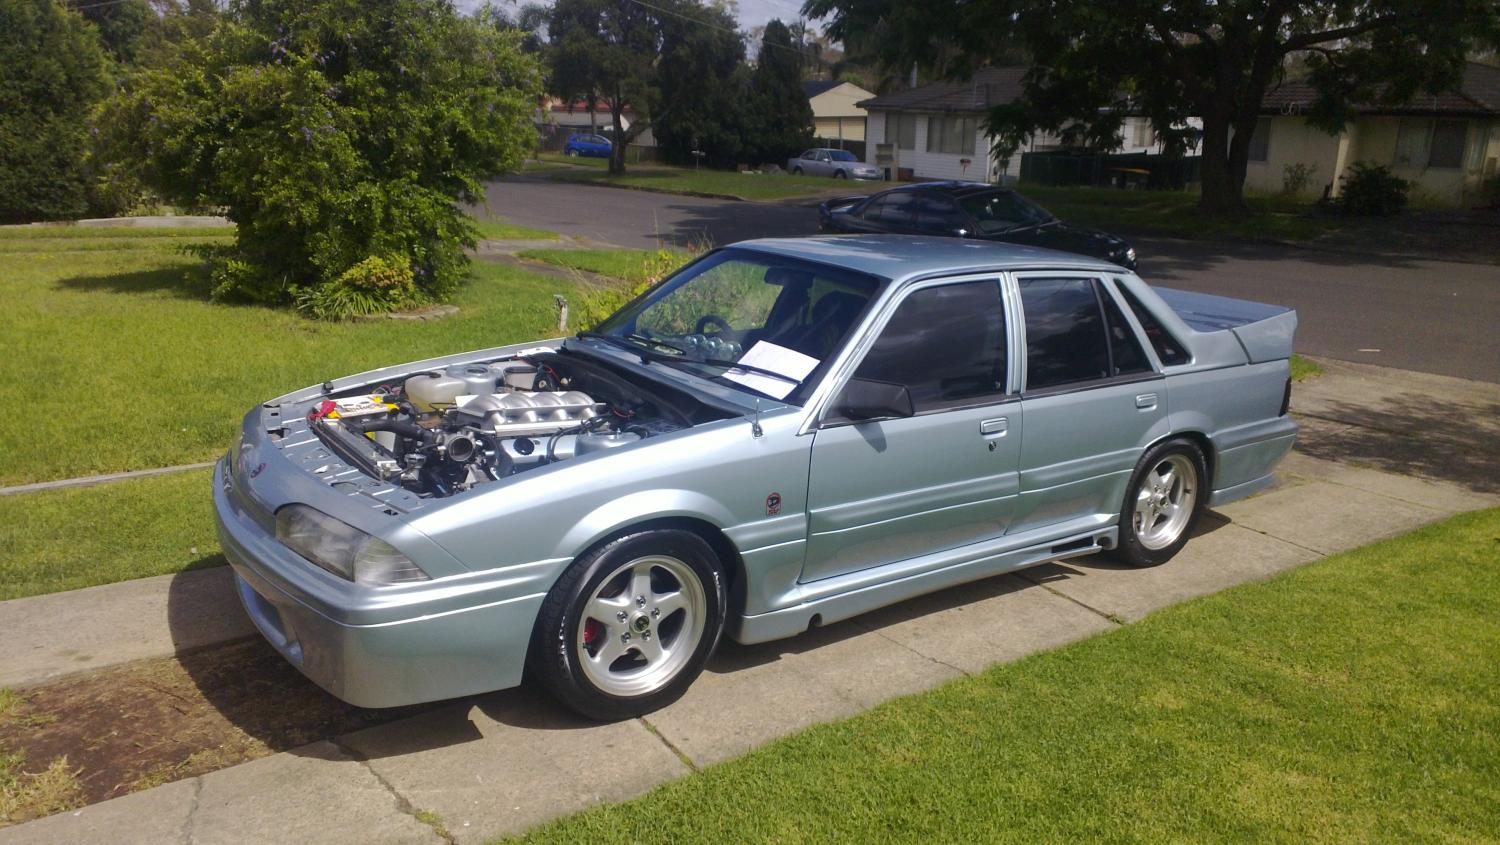 vl walkinshaw replica project | Just Commodores